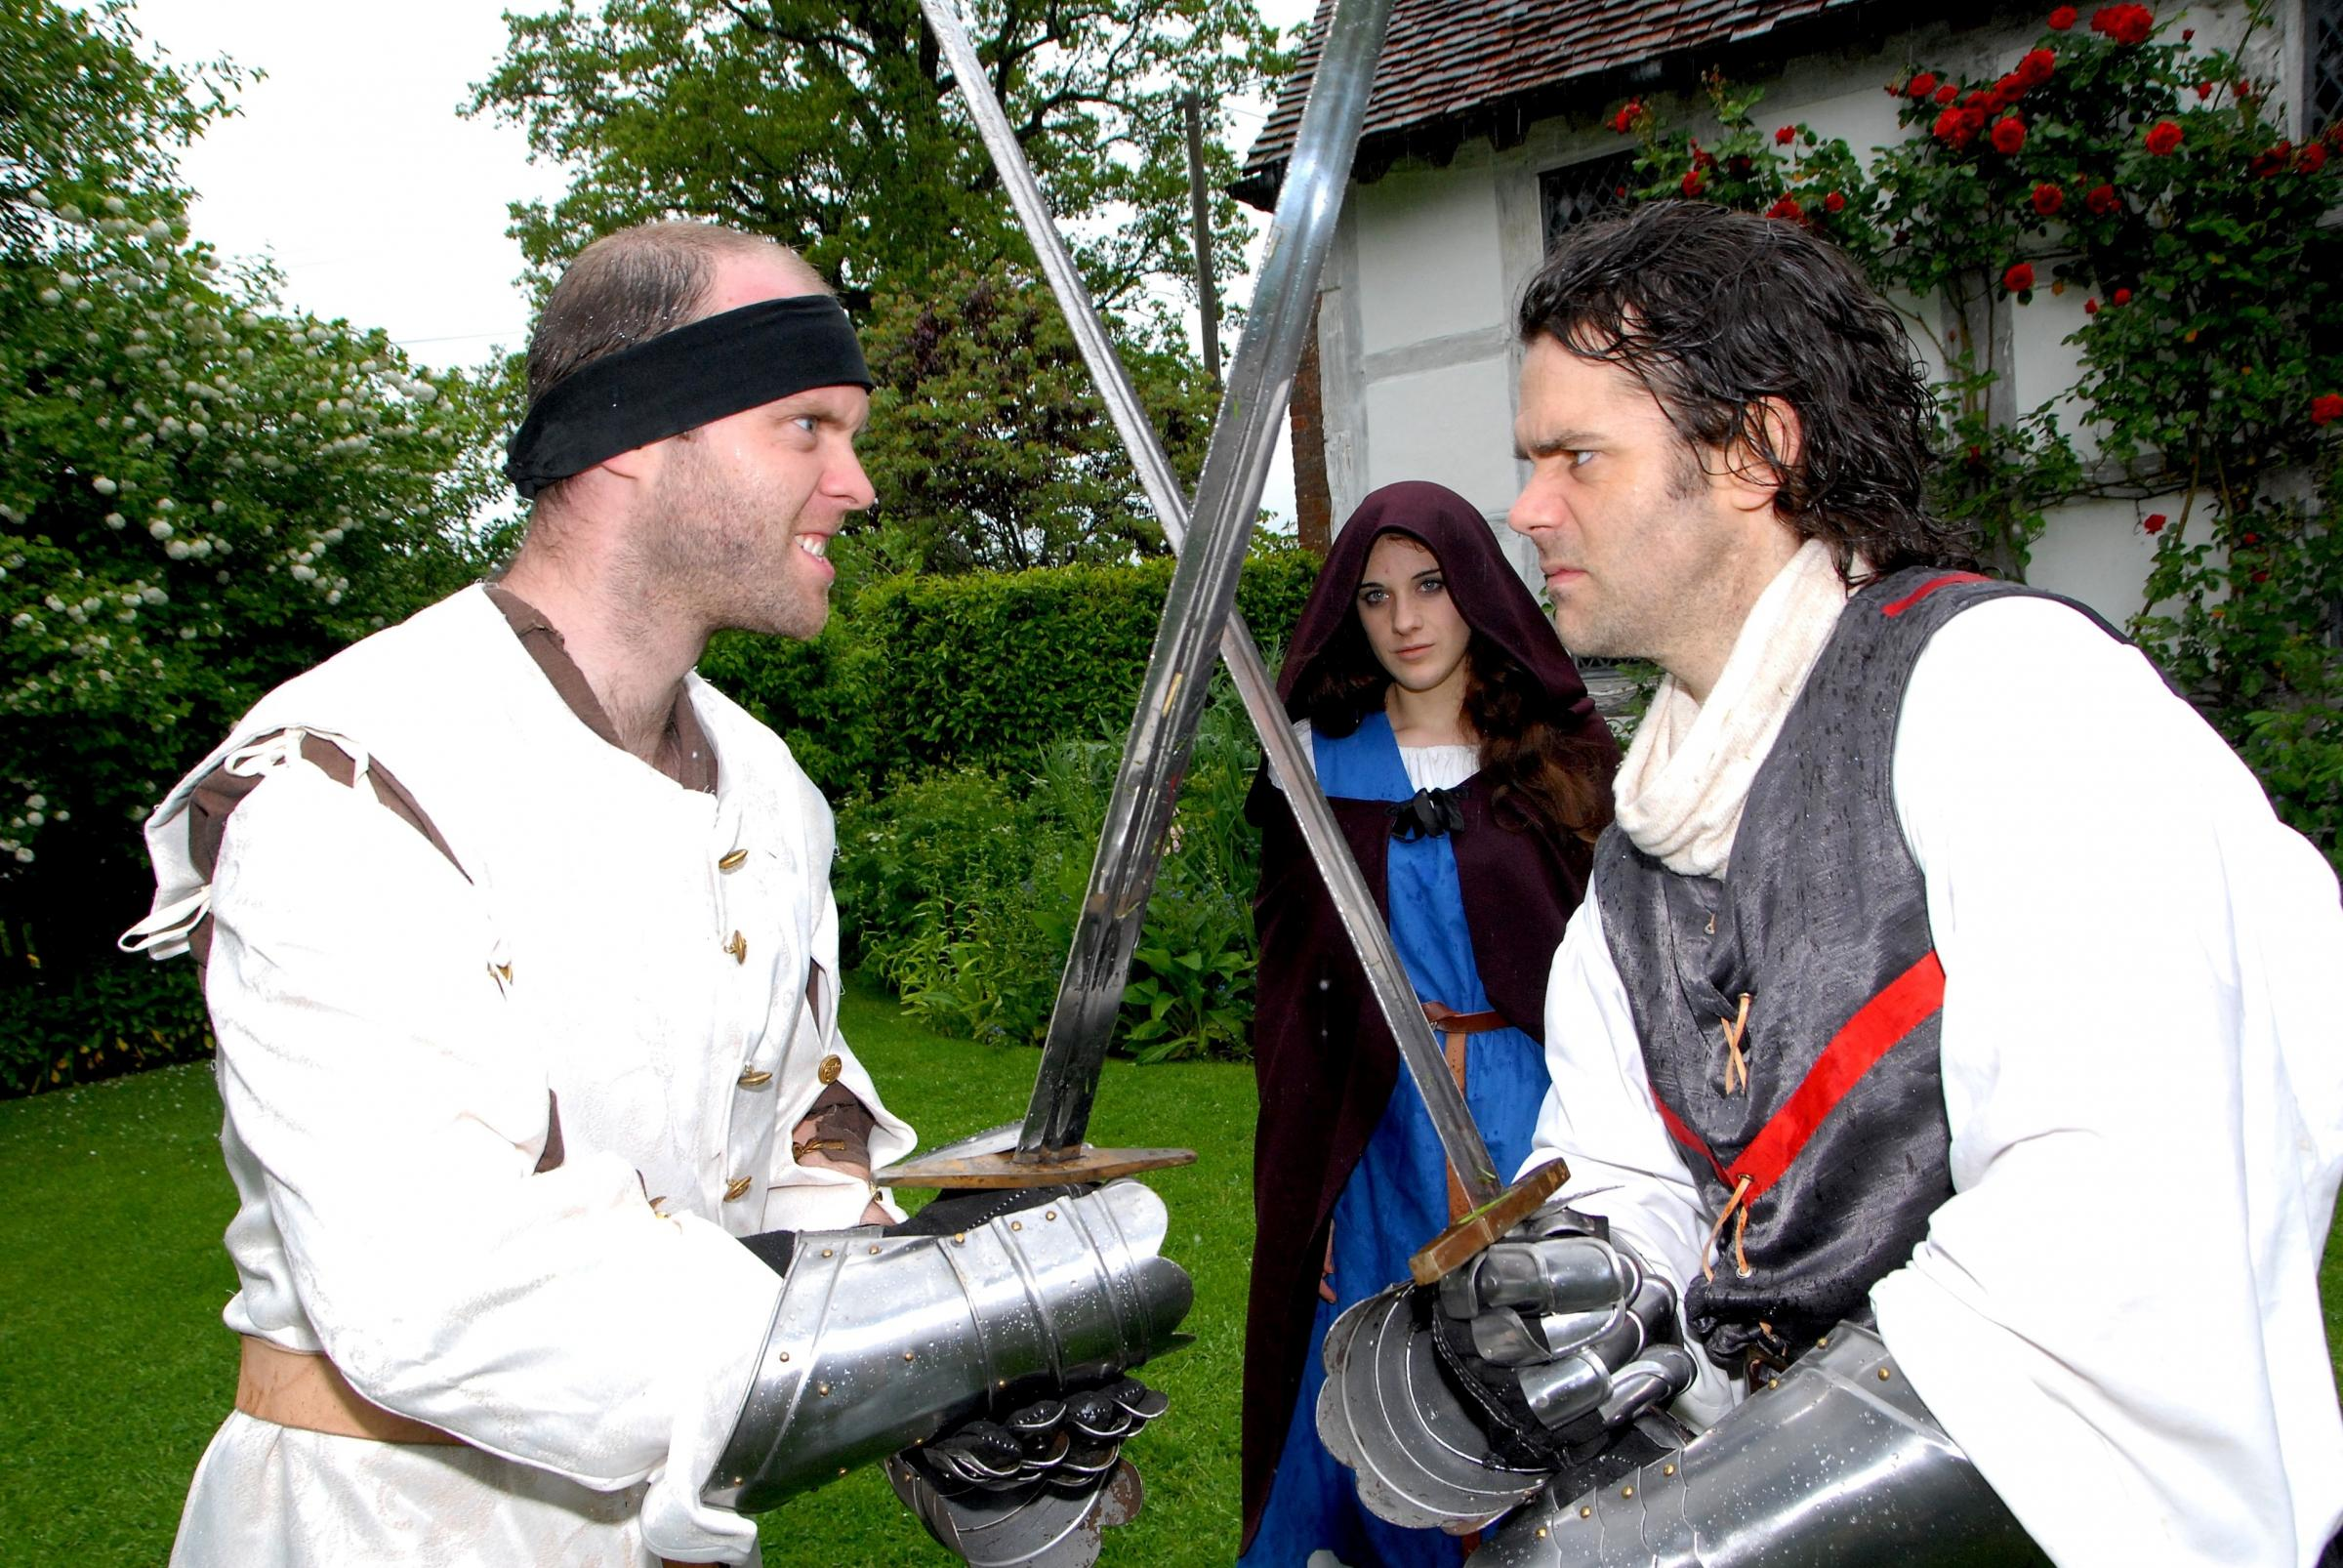 Record numbers enjoy Medieval festival